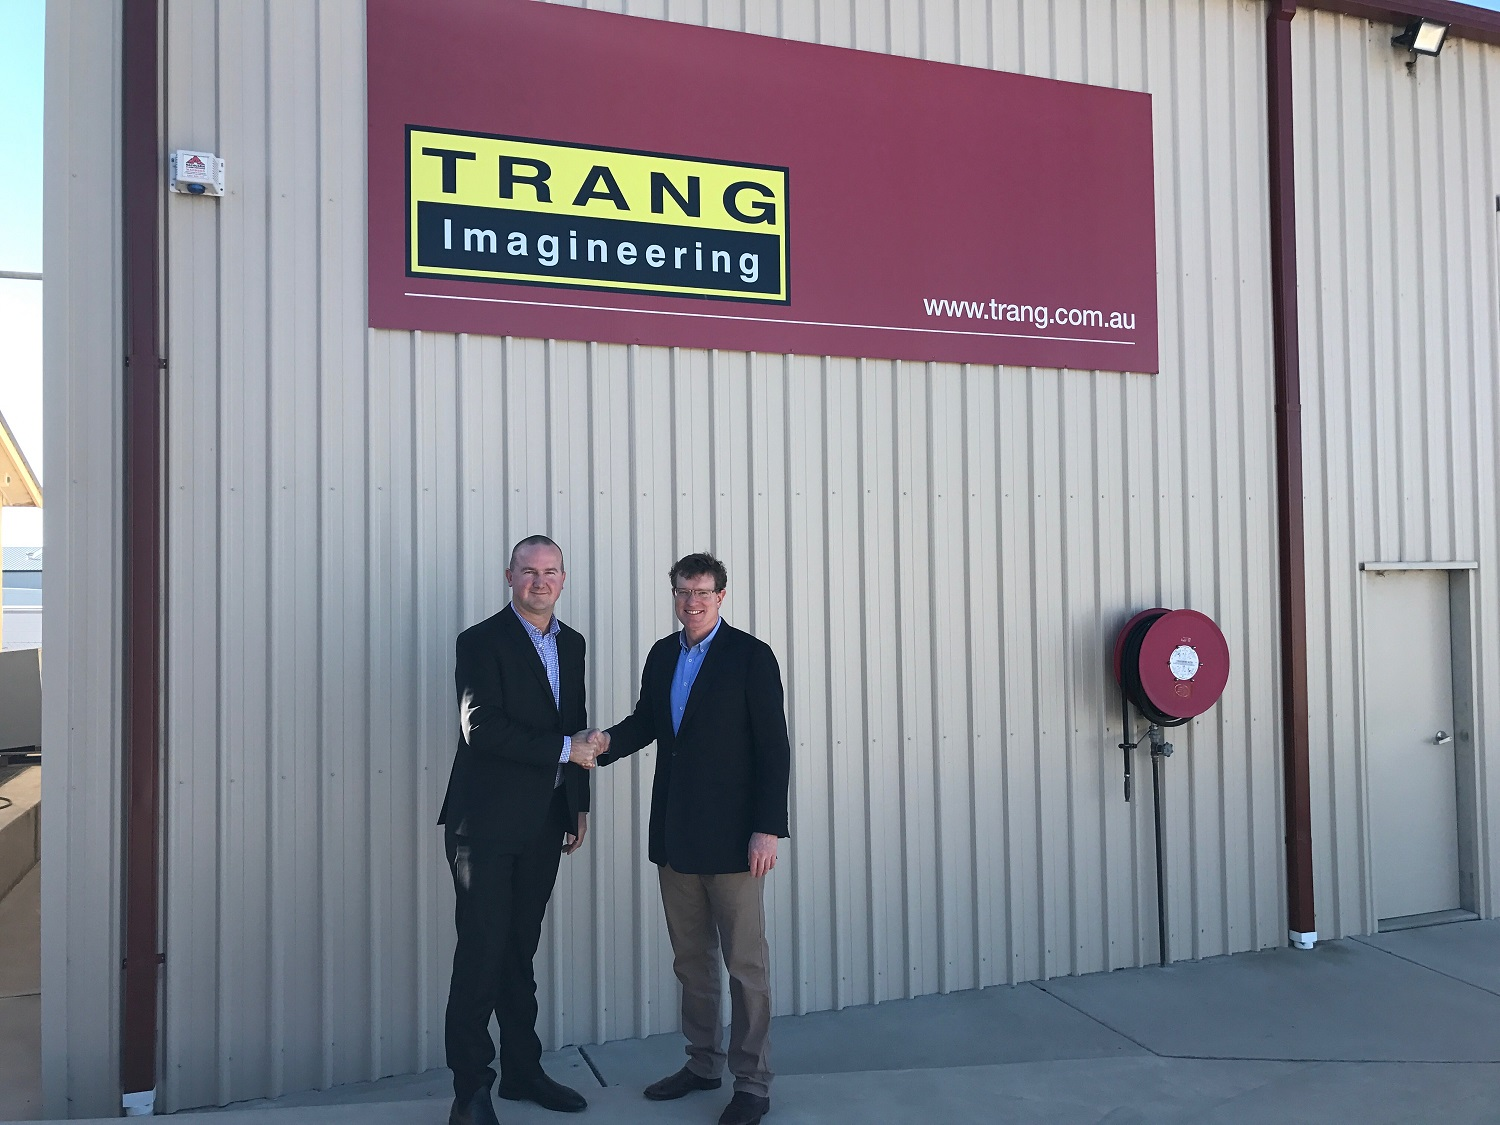 $218,000 DEFENCE INNOVATION CONTRACT WITH CALARE-BASED TRANG IMAGINEERING